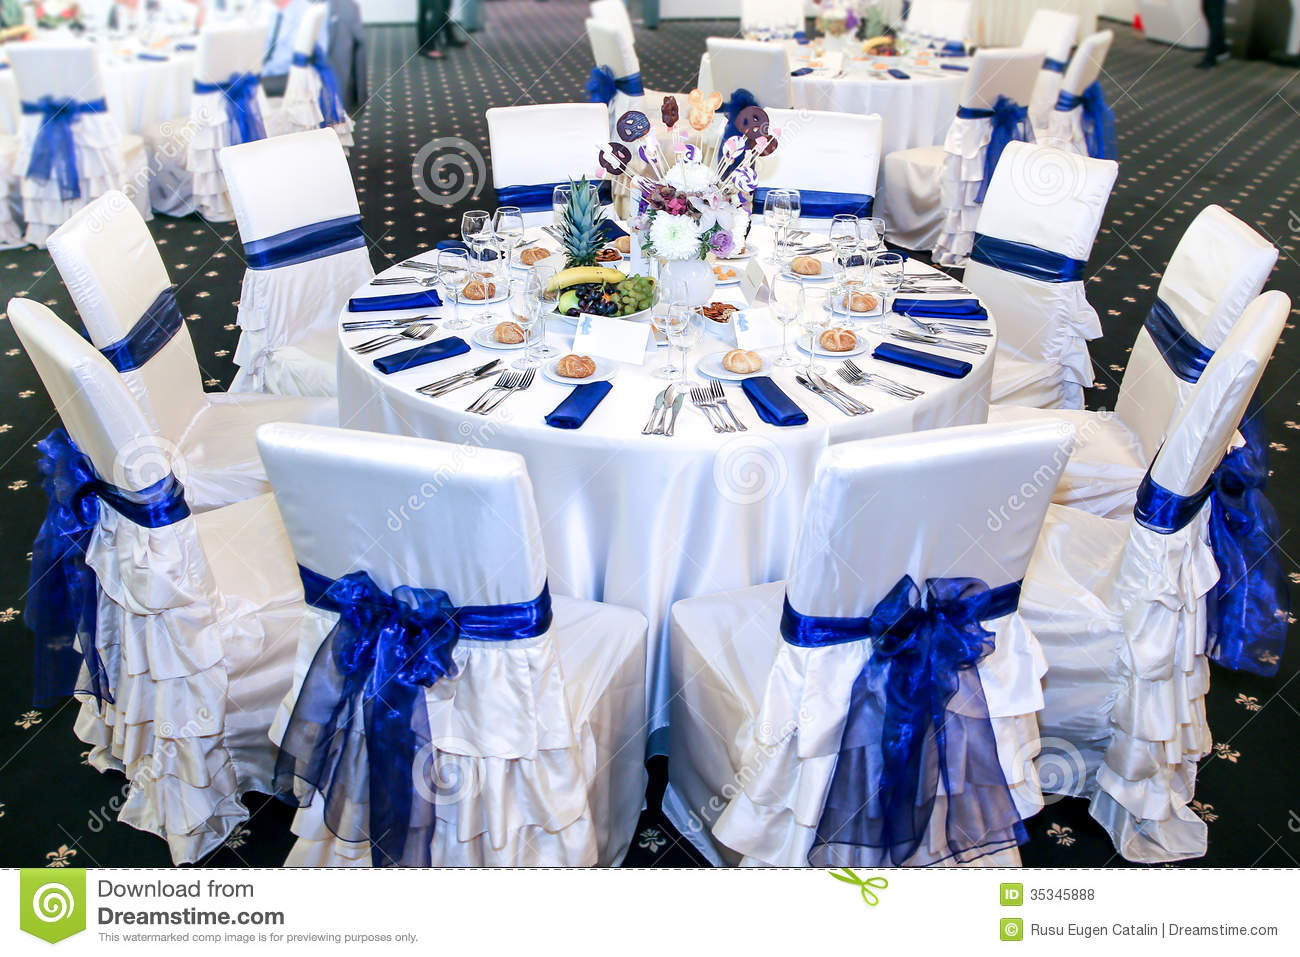 table event royalty free stock photos image 35345888